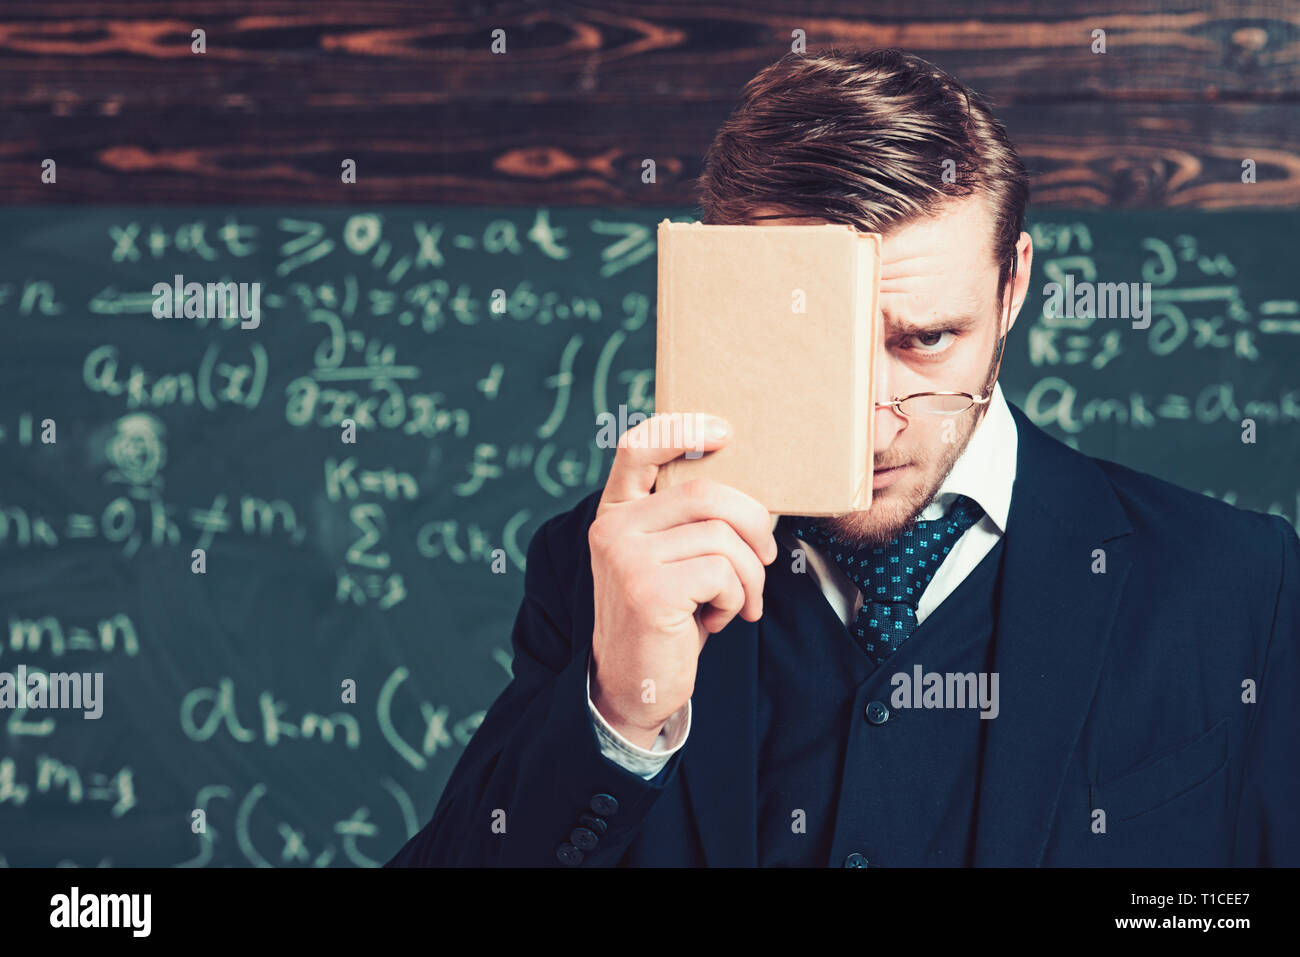 Young man in suit covering his face with book. Closeup portrait of young blond aristocrat with stylish hair and beard - Stock Image